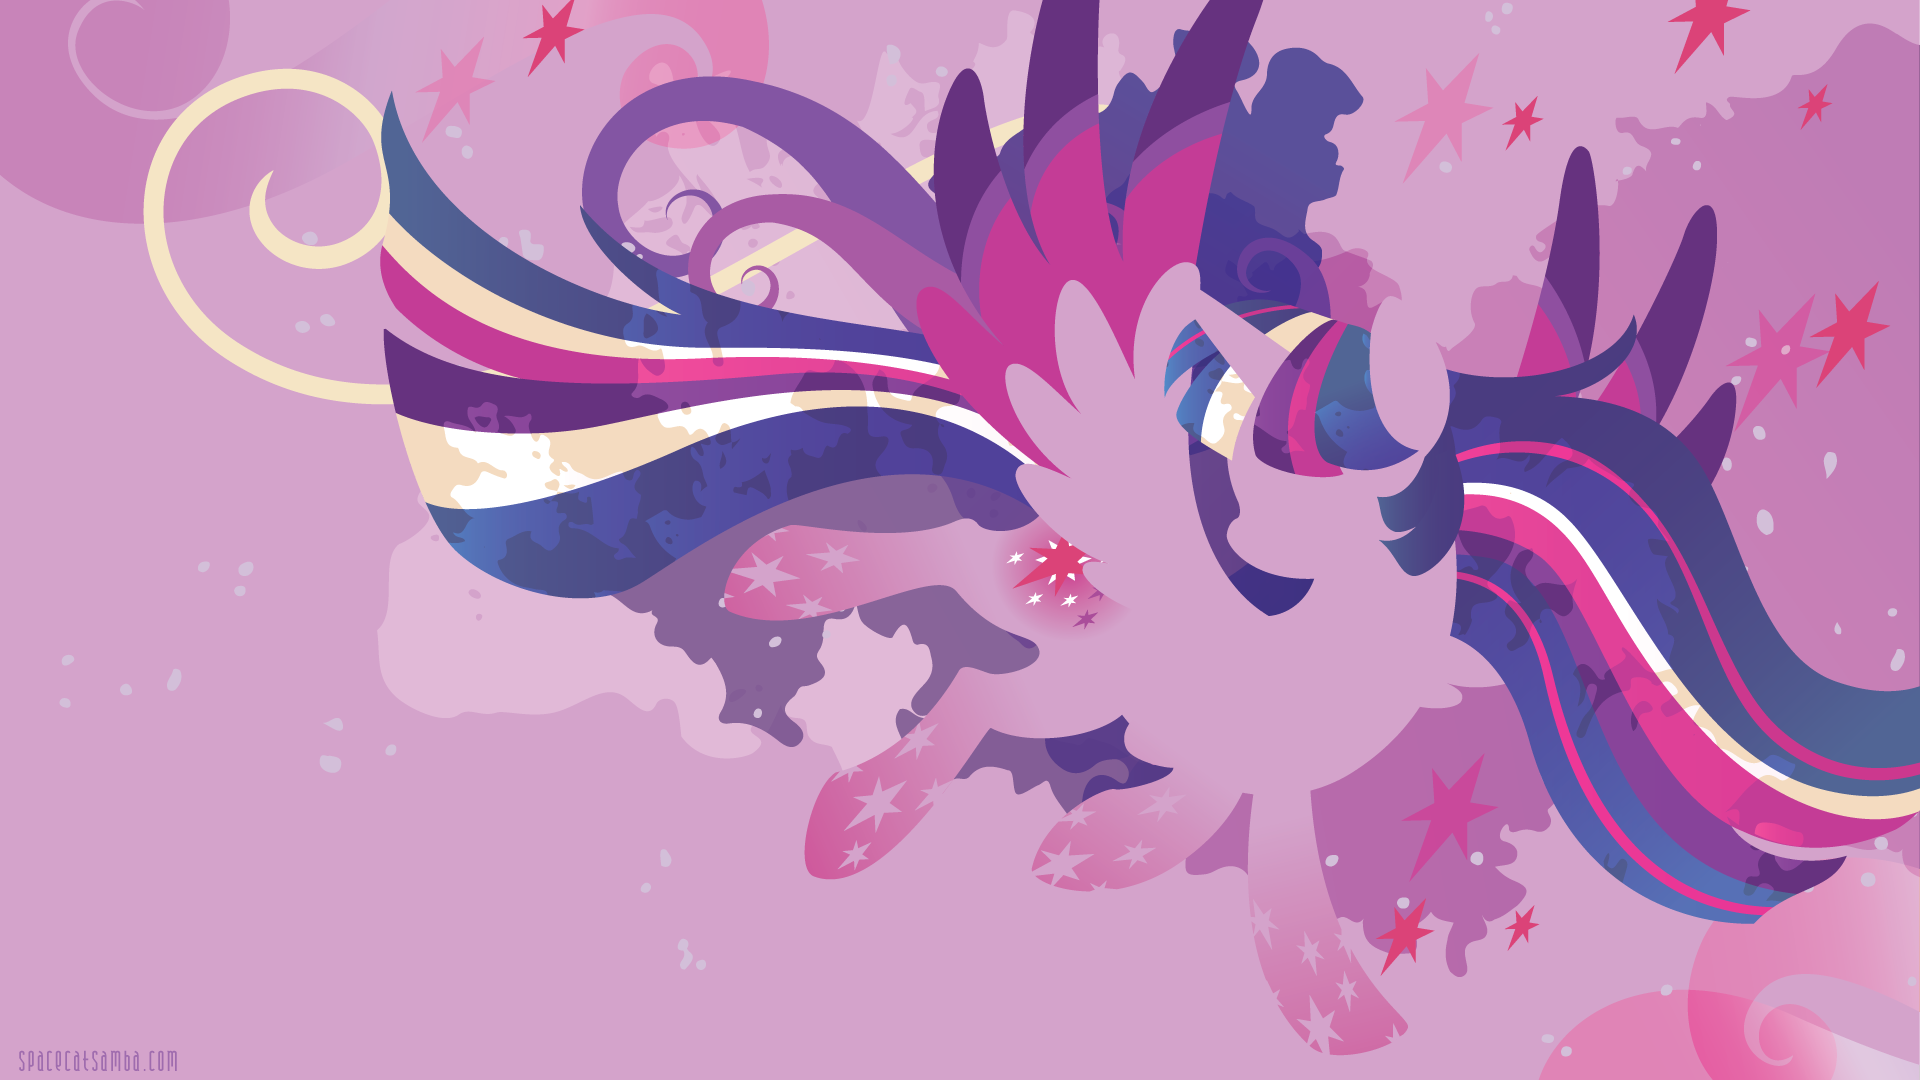 Rainbow Power Twilight Sparkle Silhouette Wall Spacecatsamba Com